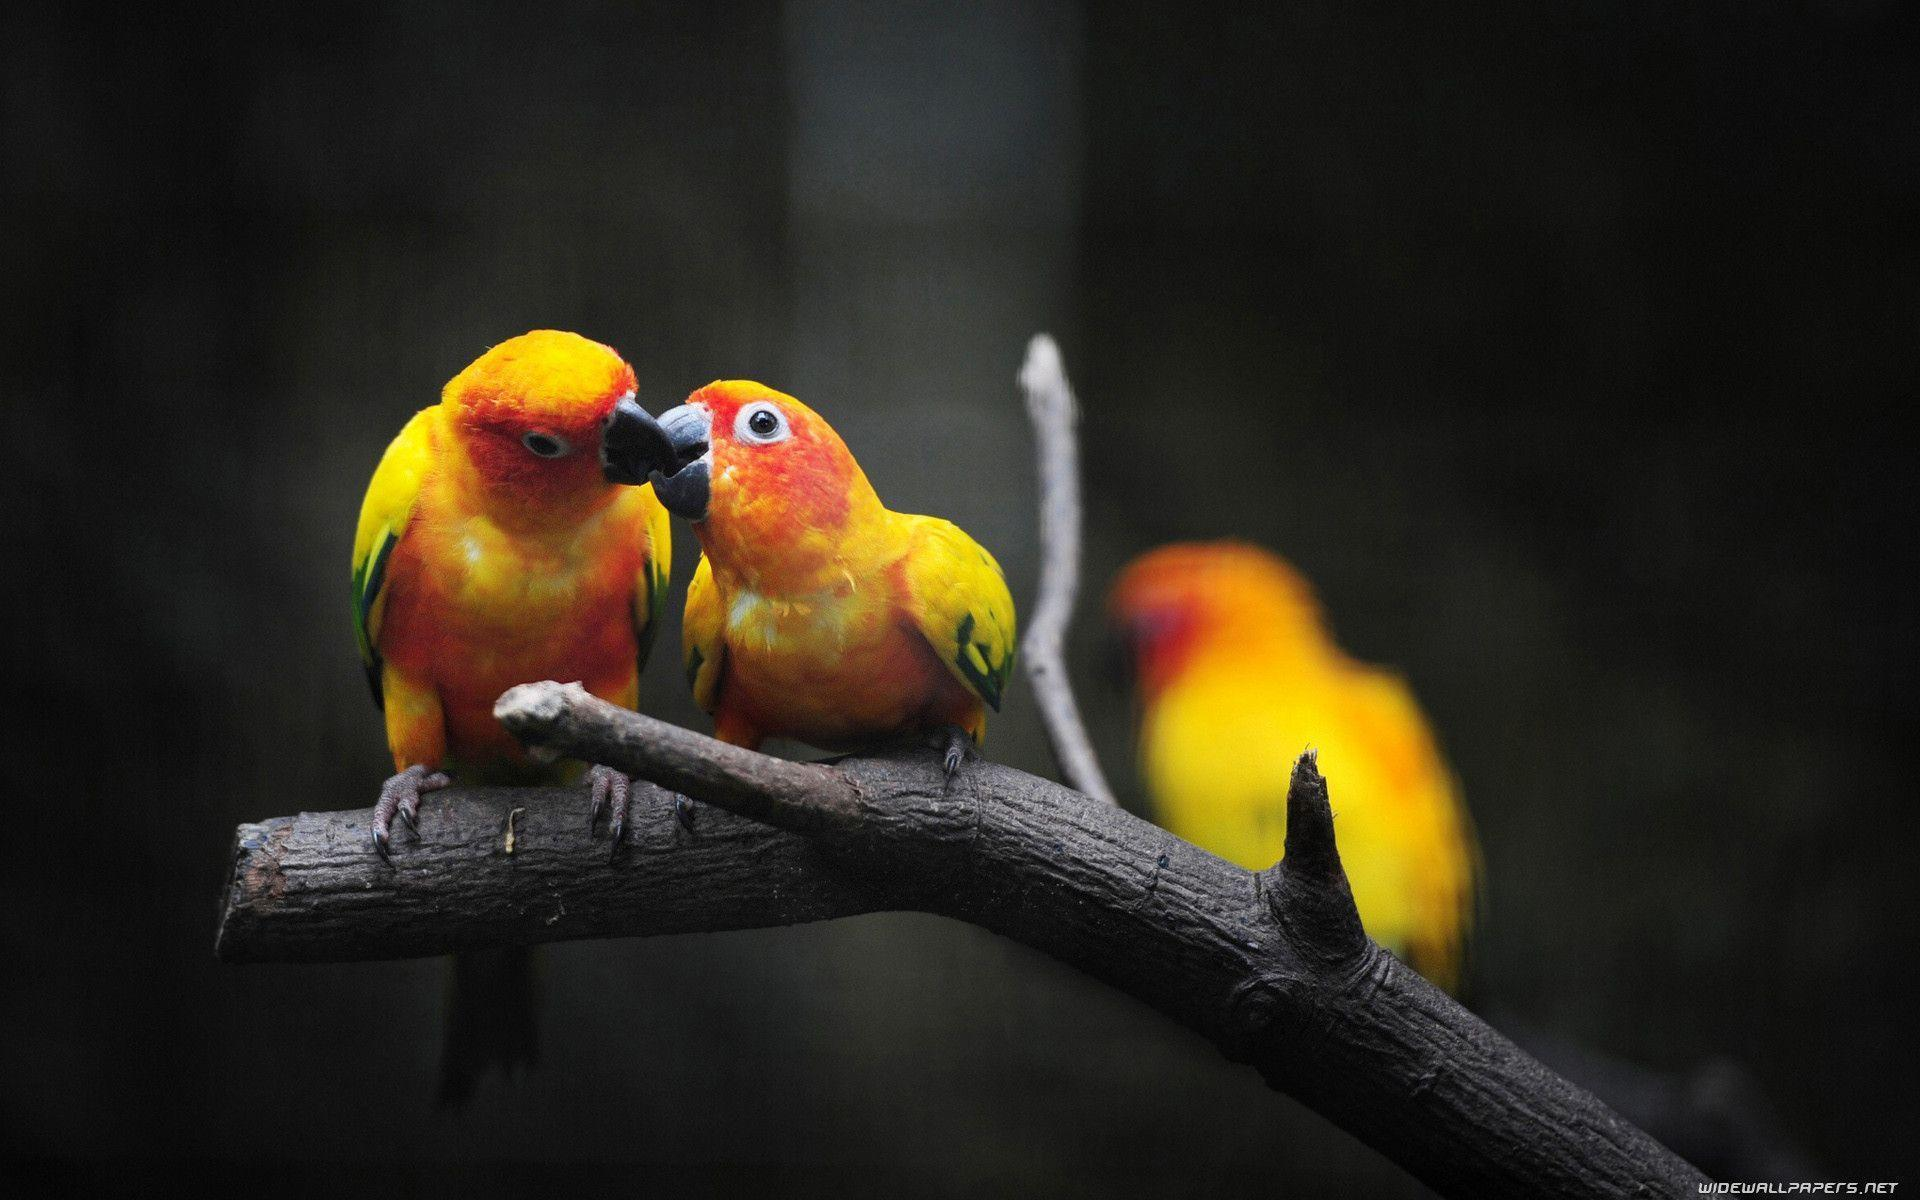 Love Birds Wallpaper For Mobile : Love Birds Wallpapers - Wallpaper cave